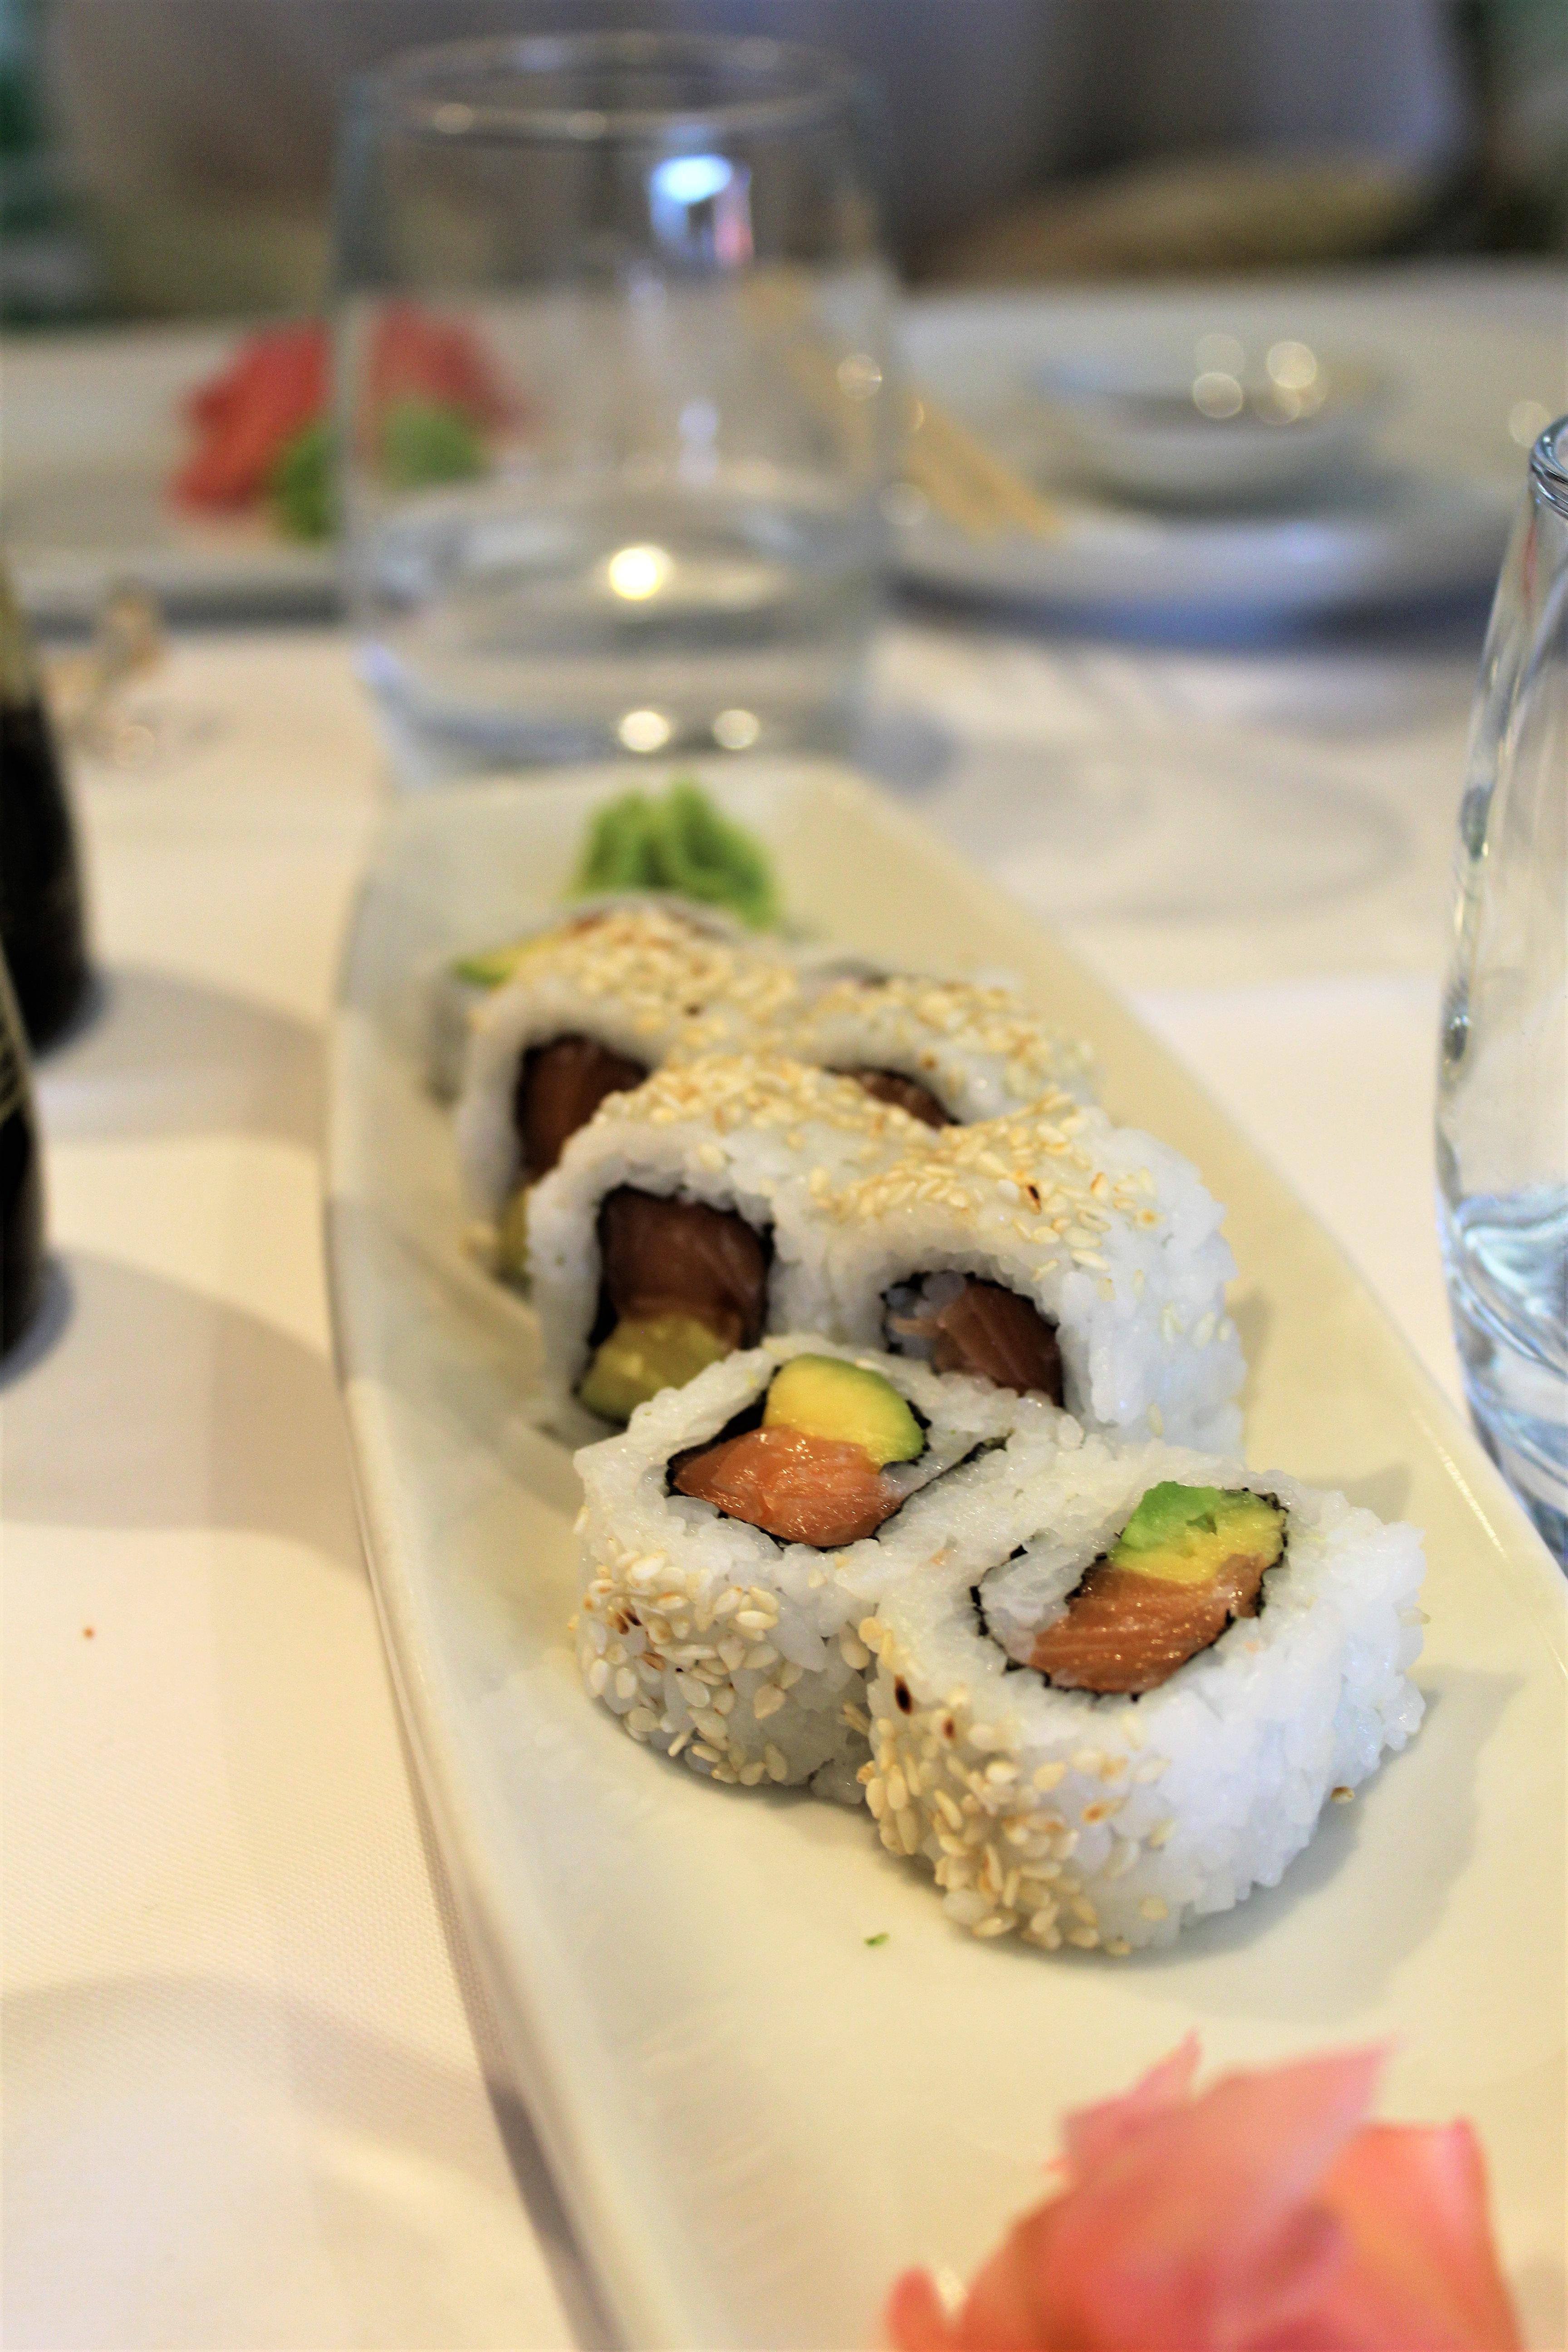 California rolls and sushi on white plate